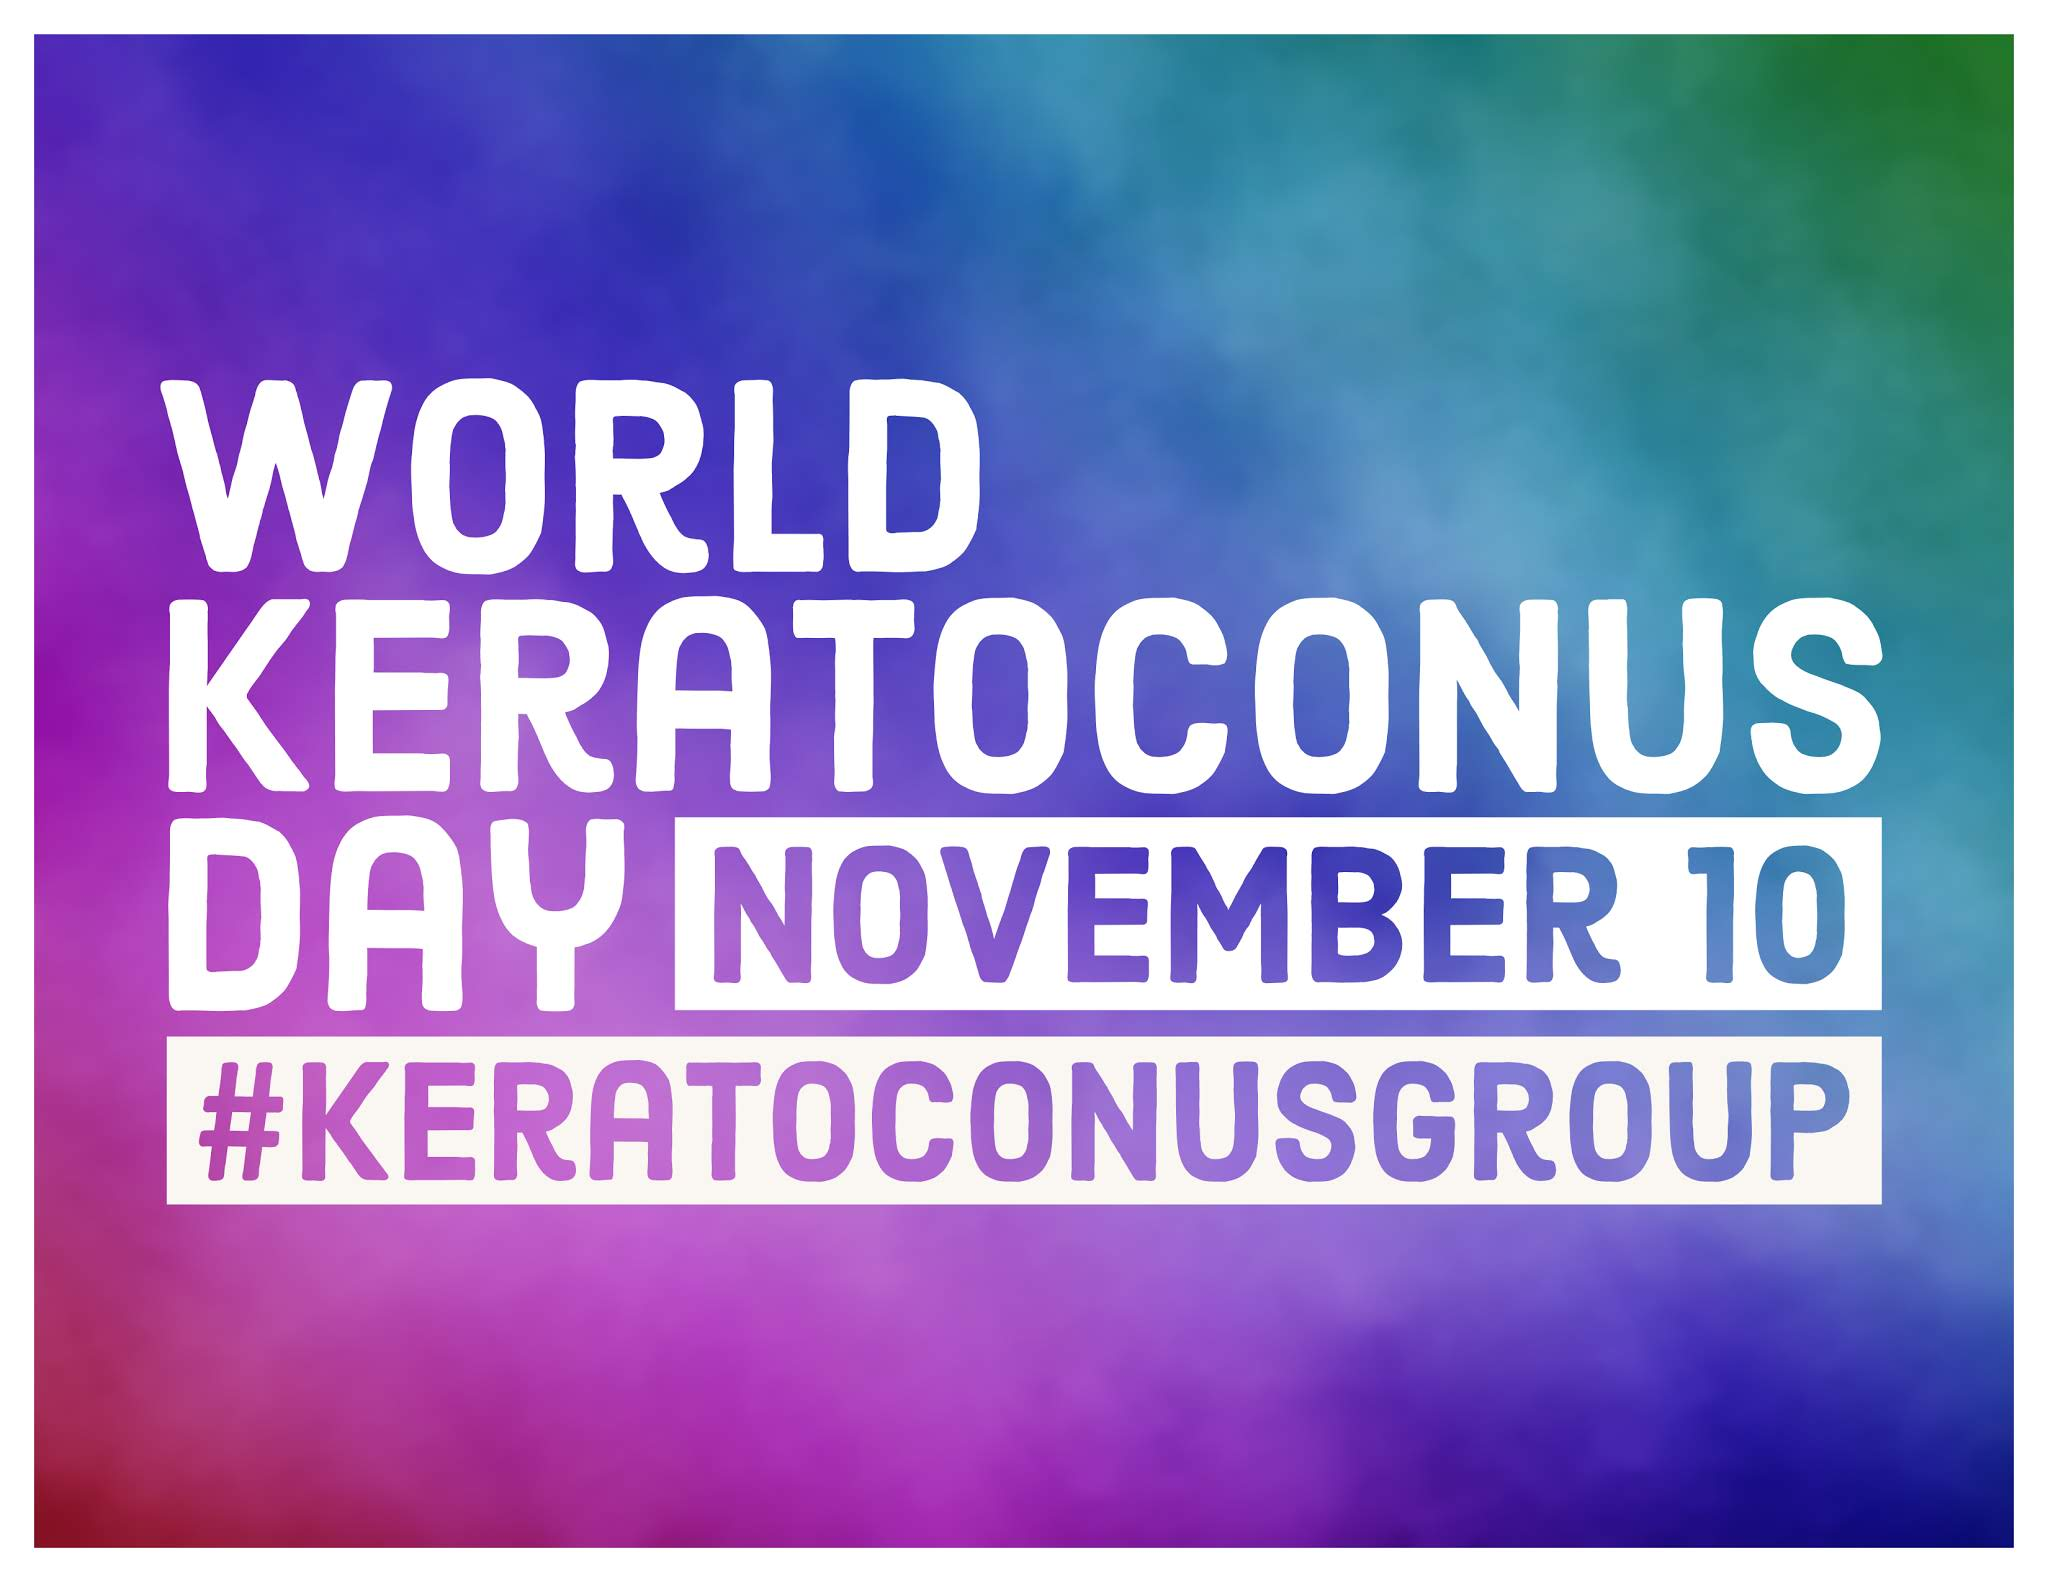 National Keratoconus Day 2018 Poster